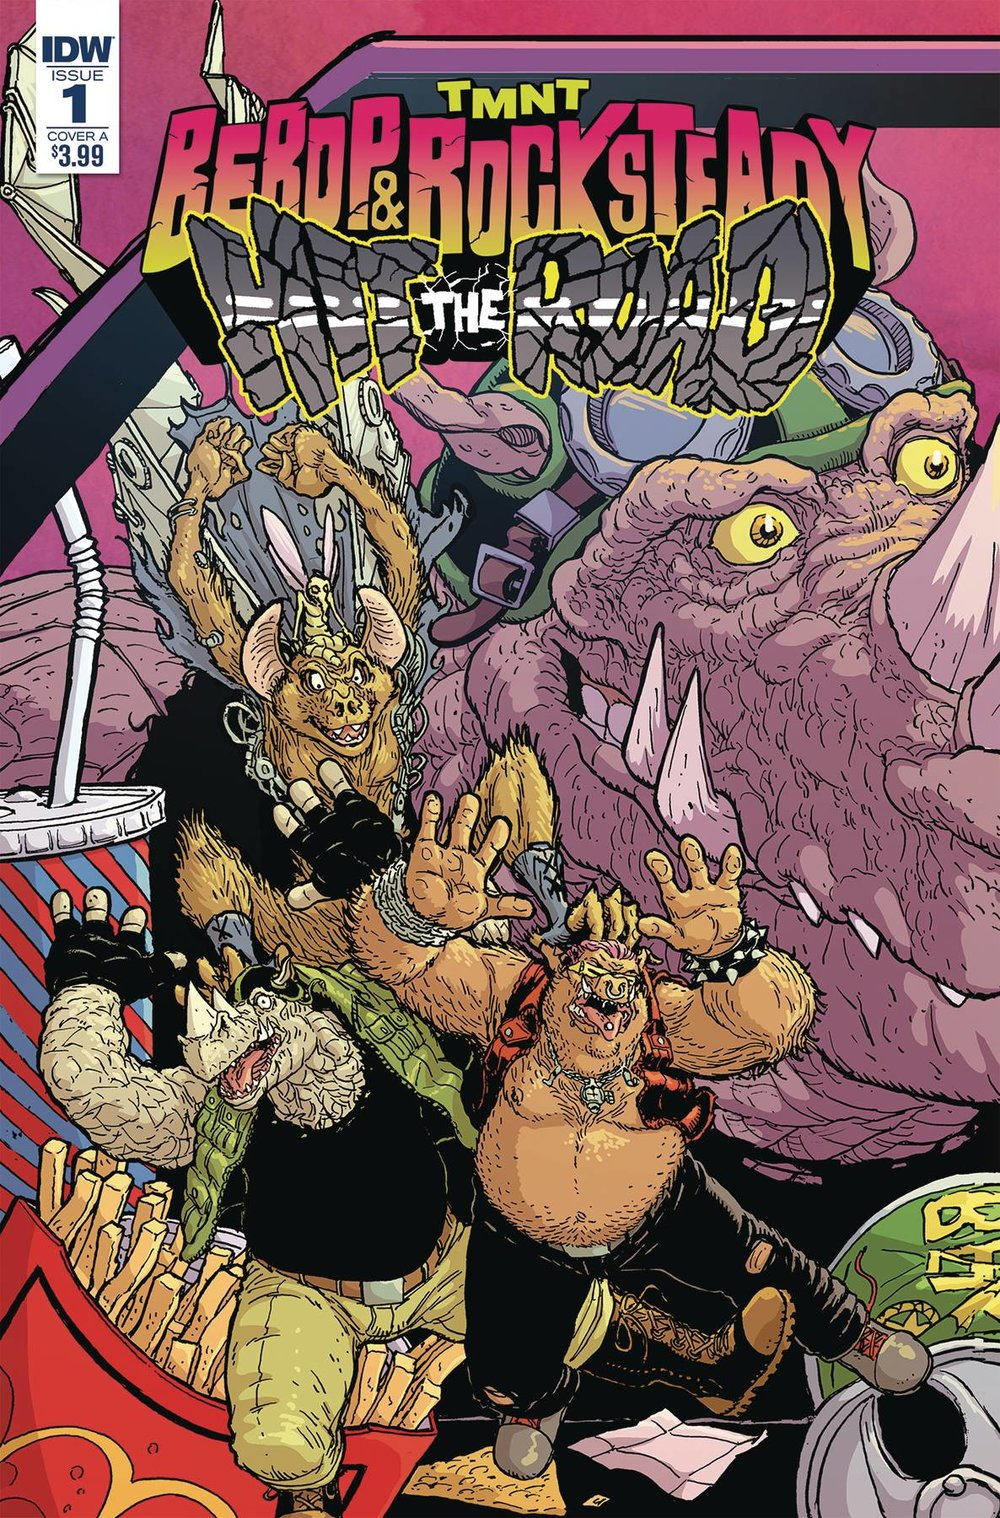 TMNT BEBOP ROCKSTEADY HIT THE ROAD 1 of 5 CVR A PITARRA.jpg